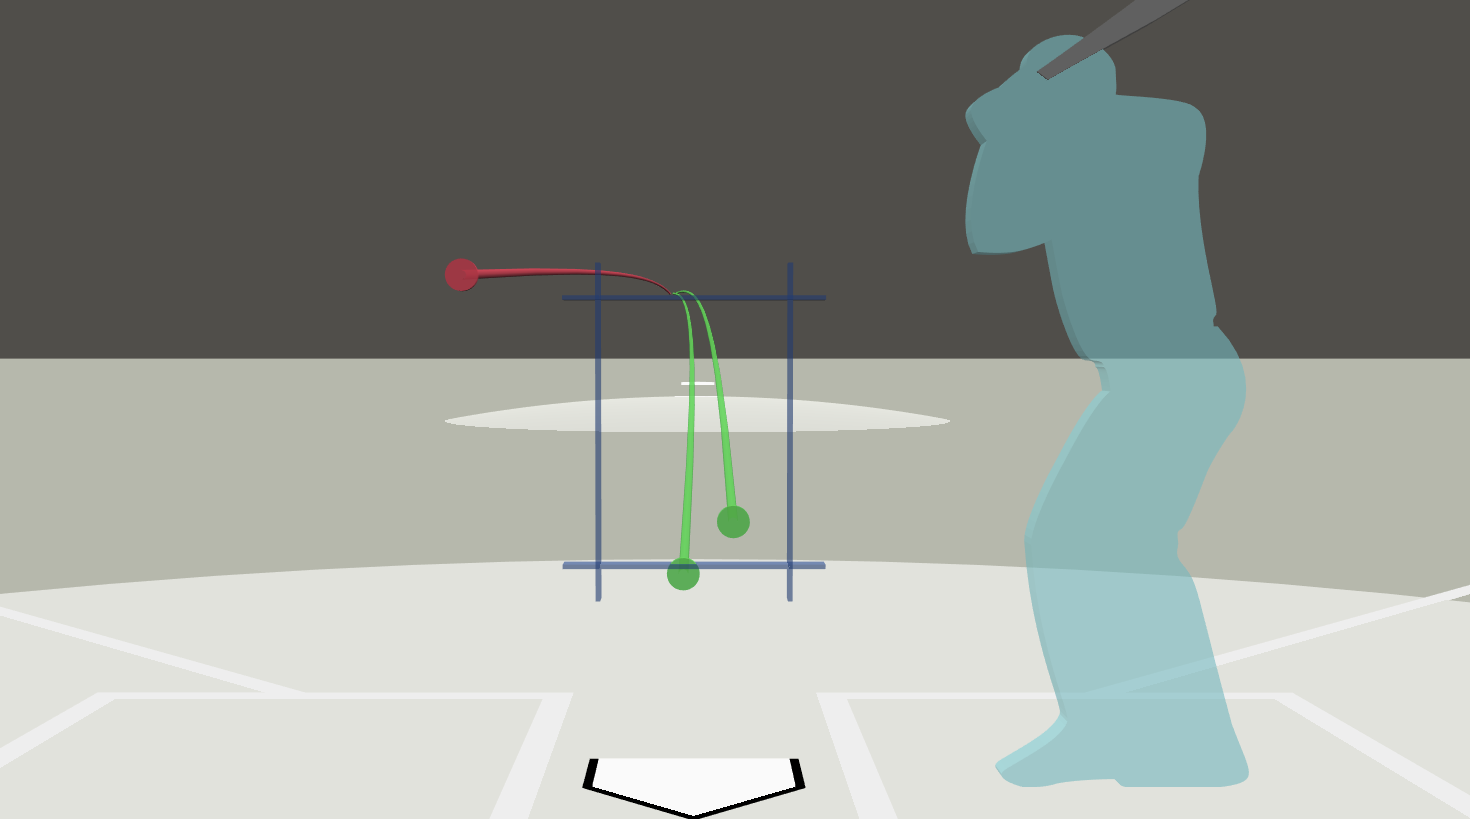 Weekly Pitchcast - Mechanics, spin rates, pitch grips and more…